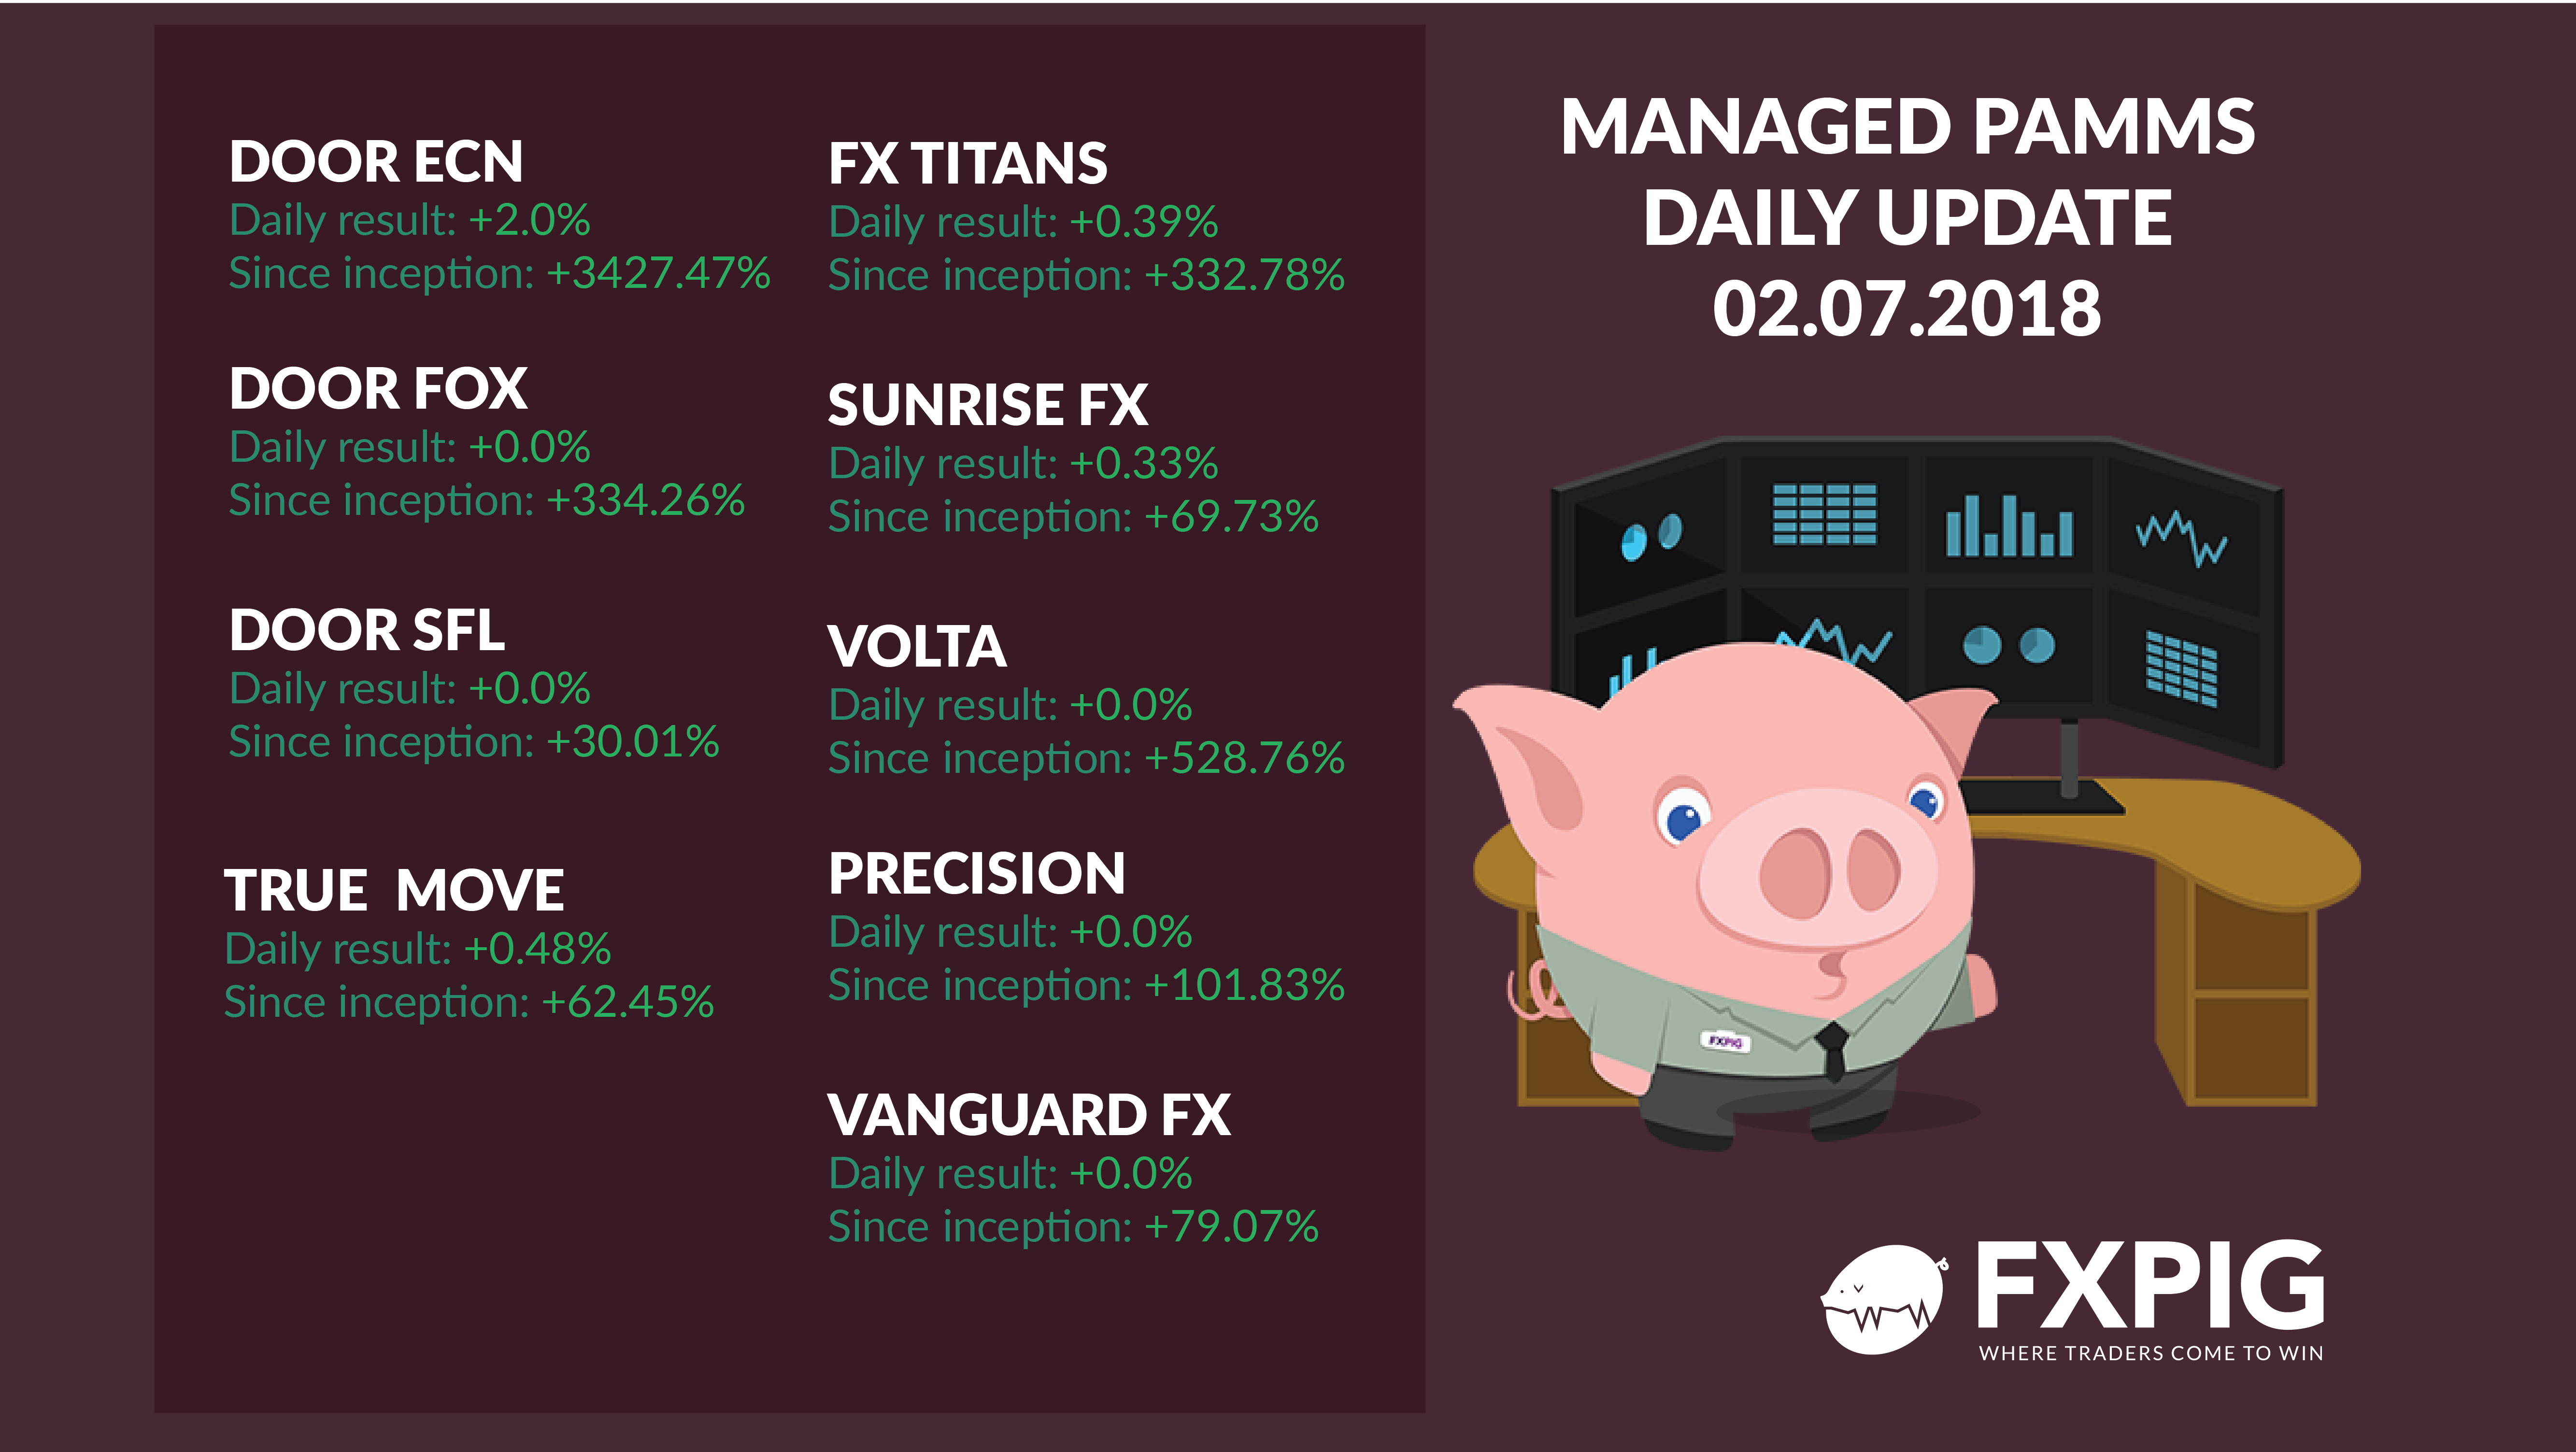 FOREX_Daily-Managed-Accounts0207_FXPIG